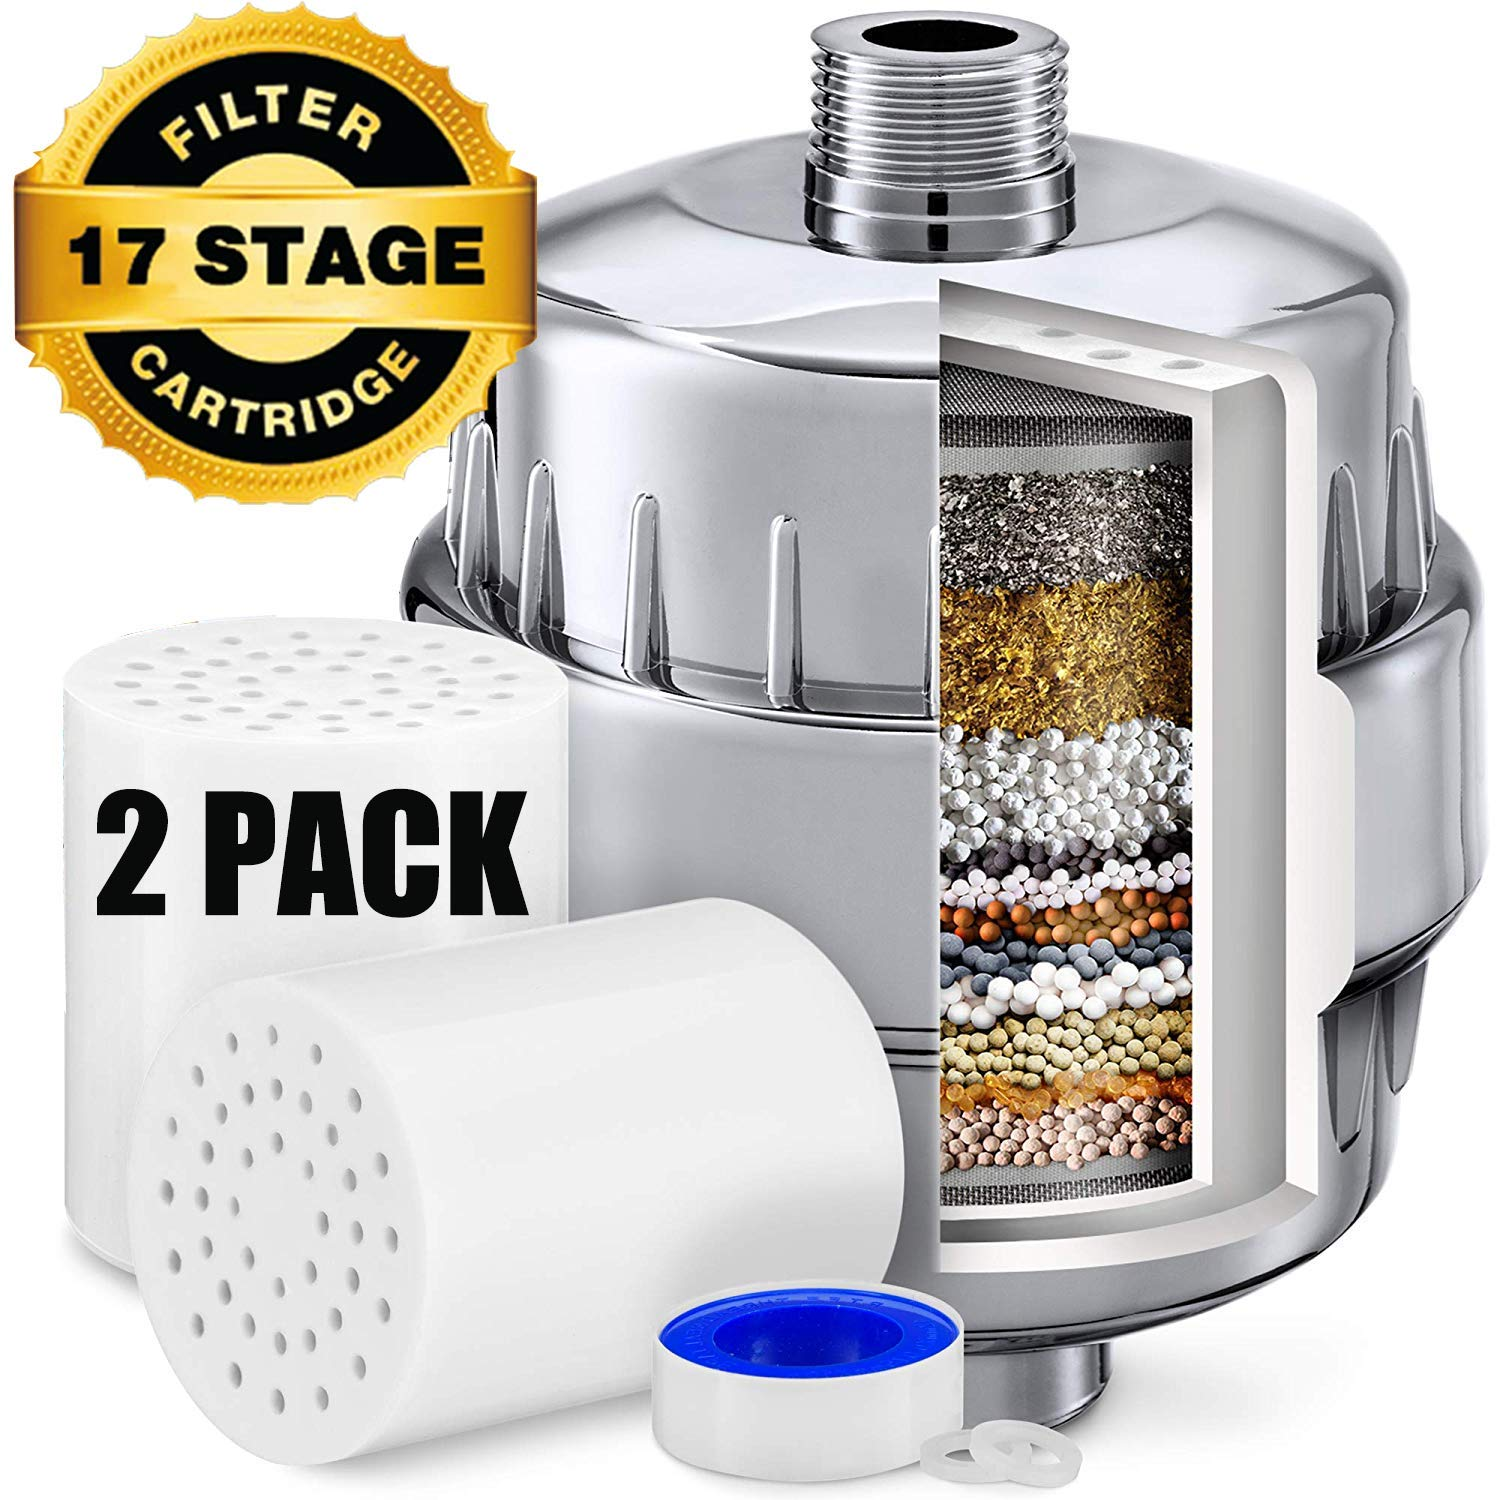 17 Stage Shower Filter - Shower Head Filter - Chlorine Showerhead Filter - Vitamin Shower Filter - Shower Water Filter - 2 Replacement Filter Cartridges - Shower Filter for Hard Water by Pppsdl